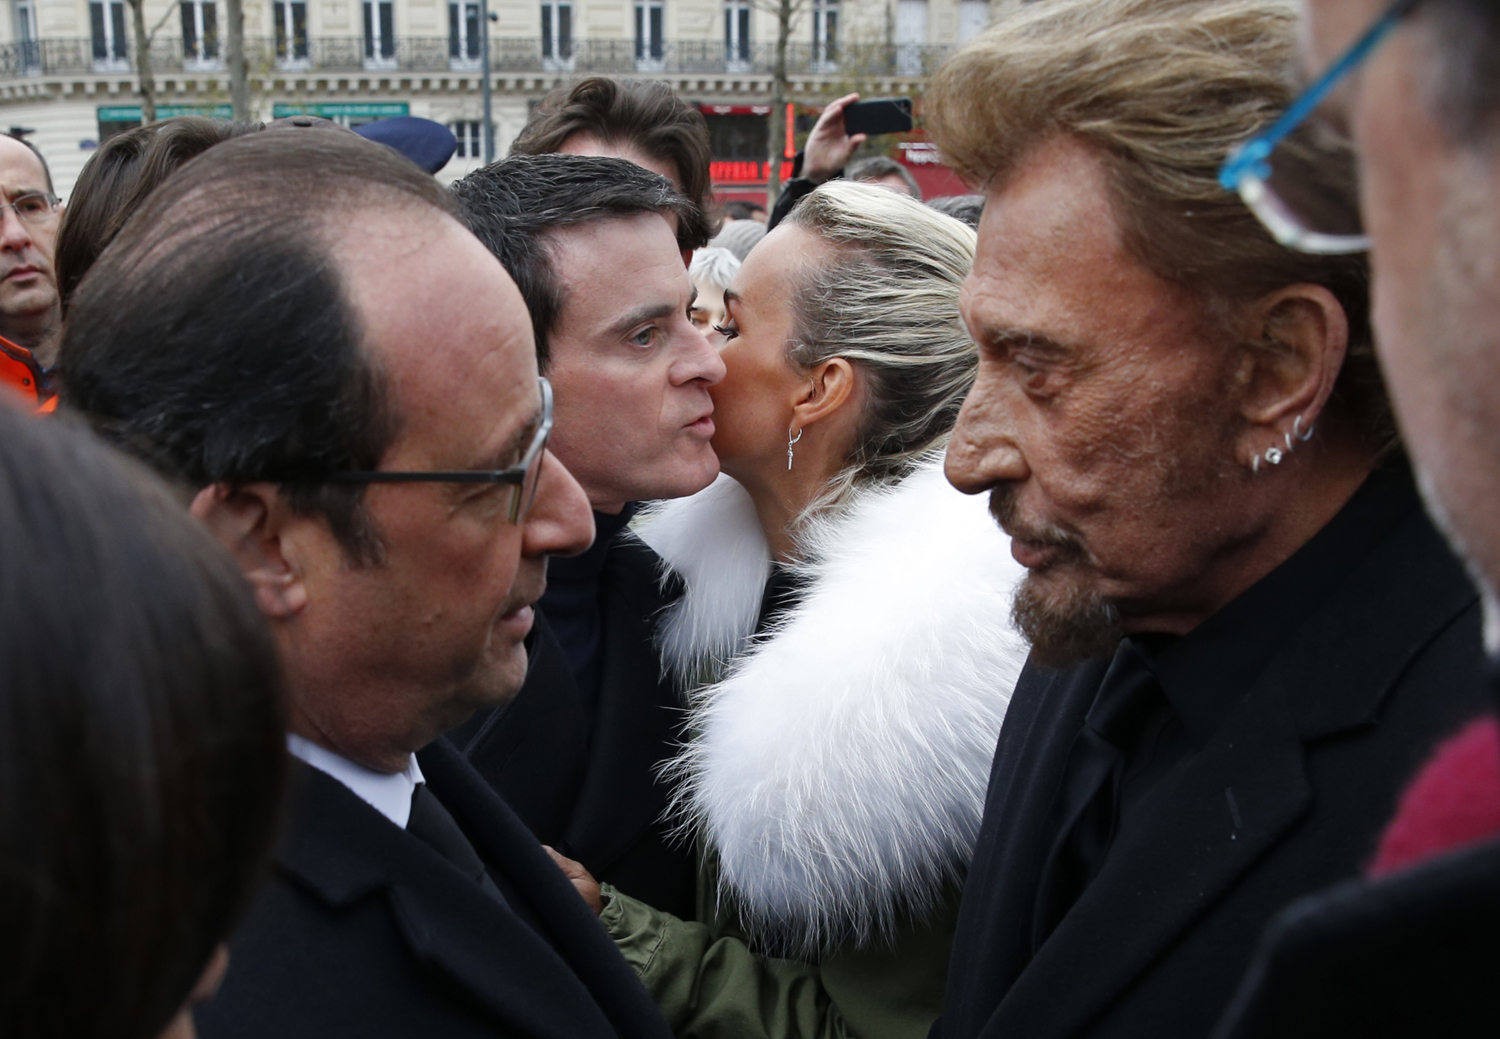 French President Francois Hollande (L) speaks with French singer Johnny Hallyday (R) as Prime Minister Manuel Valls (2ndL) kisses Hallyday's wife Laeticia at the end of a ceremony held on January 10, 2016 to mark a year since 1.6 million people thronged the French capital in a show of unity after attacks on the Charlie Hebdo newspaper and a Jewish supermarket. Just as it was last year, the vast Place de la Republique will be the focus of the gathering as people reiterate their support for freedom of expression and remember the other victims of what would become a year of jihadist outrages in France, culminating in the November 13 coordinated shootings and suicide bombings that killed 130 people and were claimed by the Islamic State (IS) group. / AFP / POOL / PHILIPPE WOJAZER